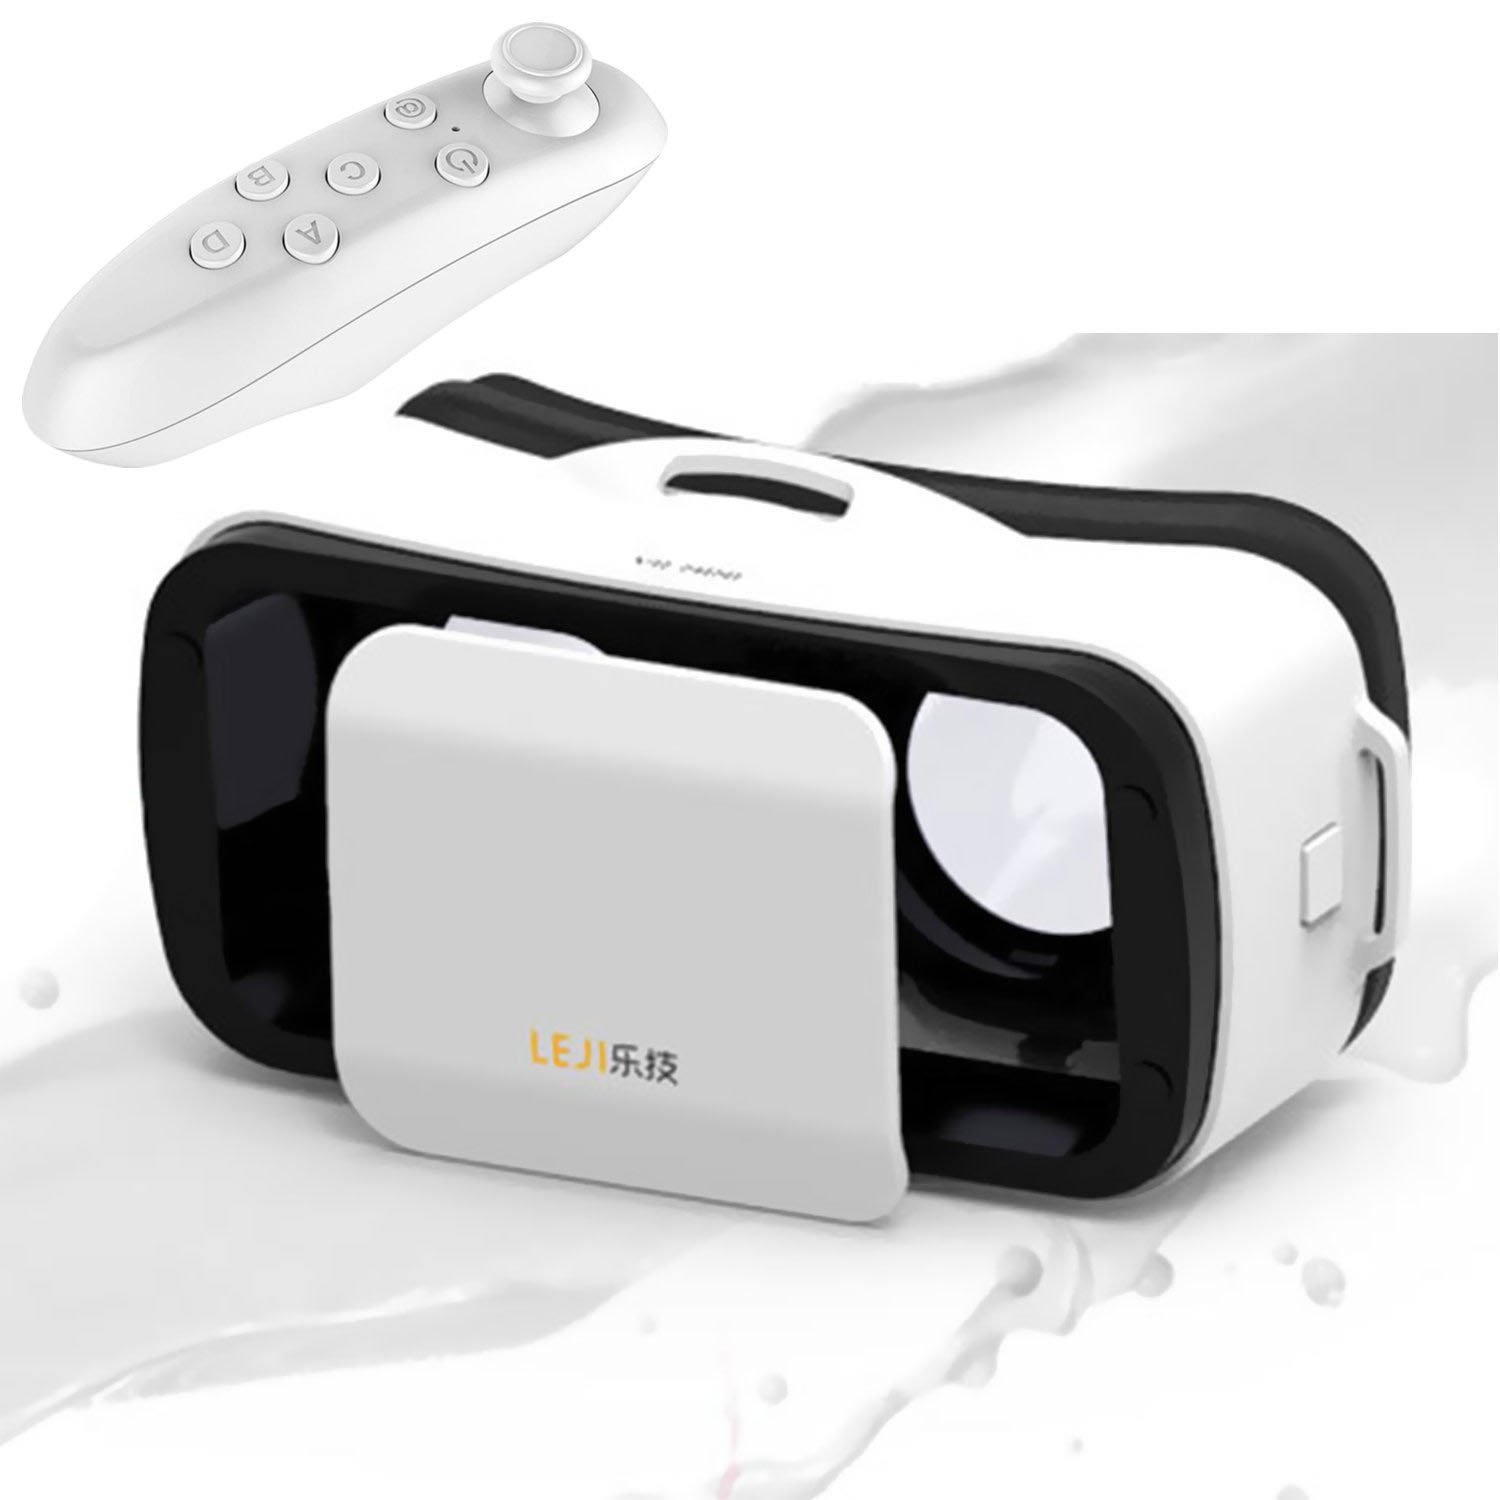 "Mini 3D VR Glasses/Headset, Tsanglight Virtual Reality Headset + Remote Controller for IOS iPhone 7/6/6S Plus, Android Samsung Galaxy S7 Edge S7/6 /J7/A5/A3 2016 & Other 4.5-5.5"" Cellphone - White"